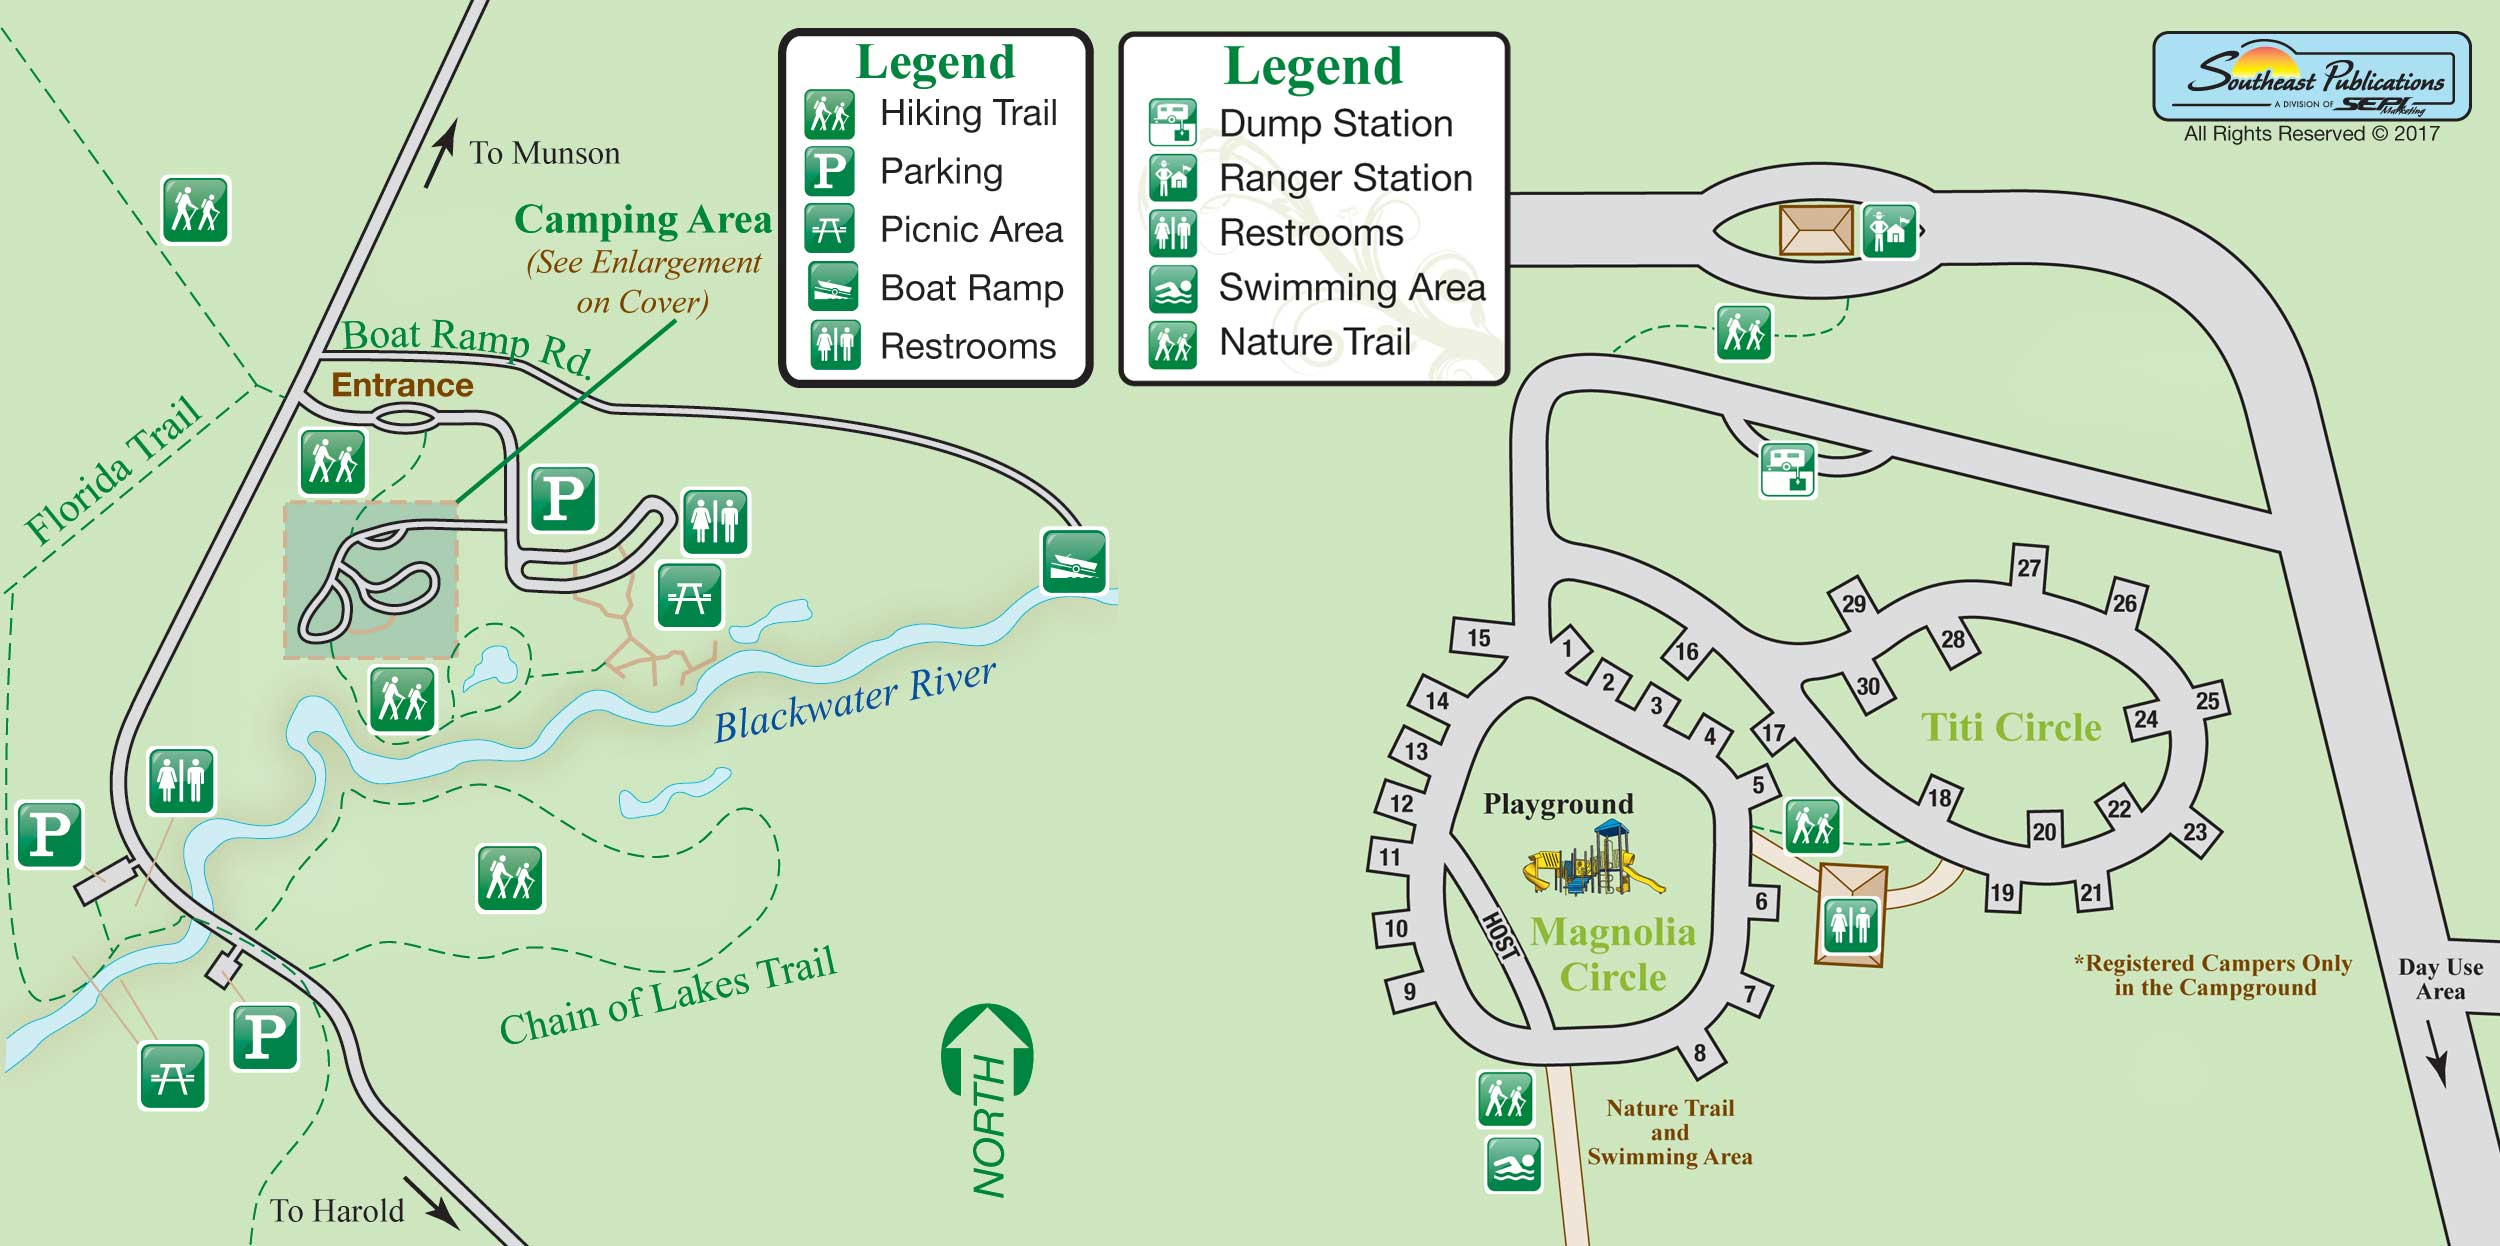 Florida State Parks Rv Camping - Know Your Campground - Florida Rv Camping Map